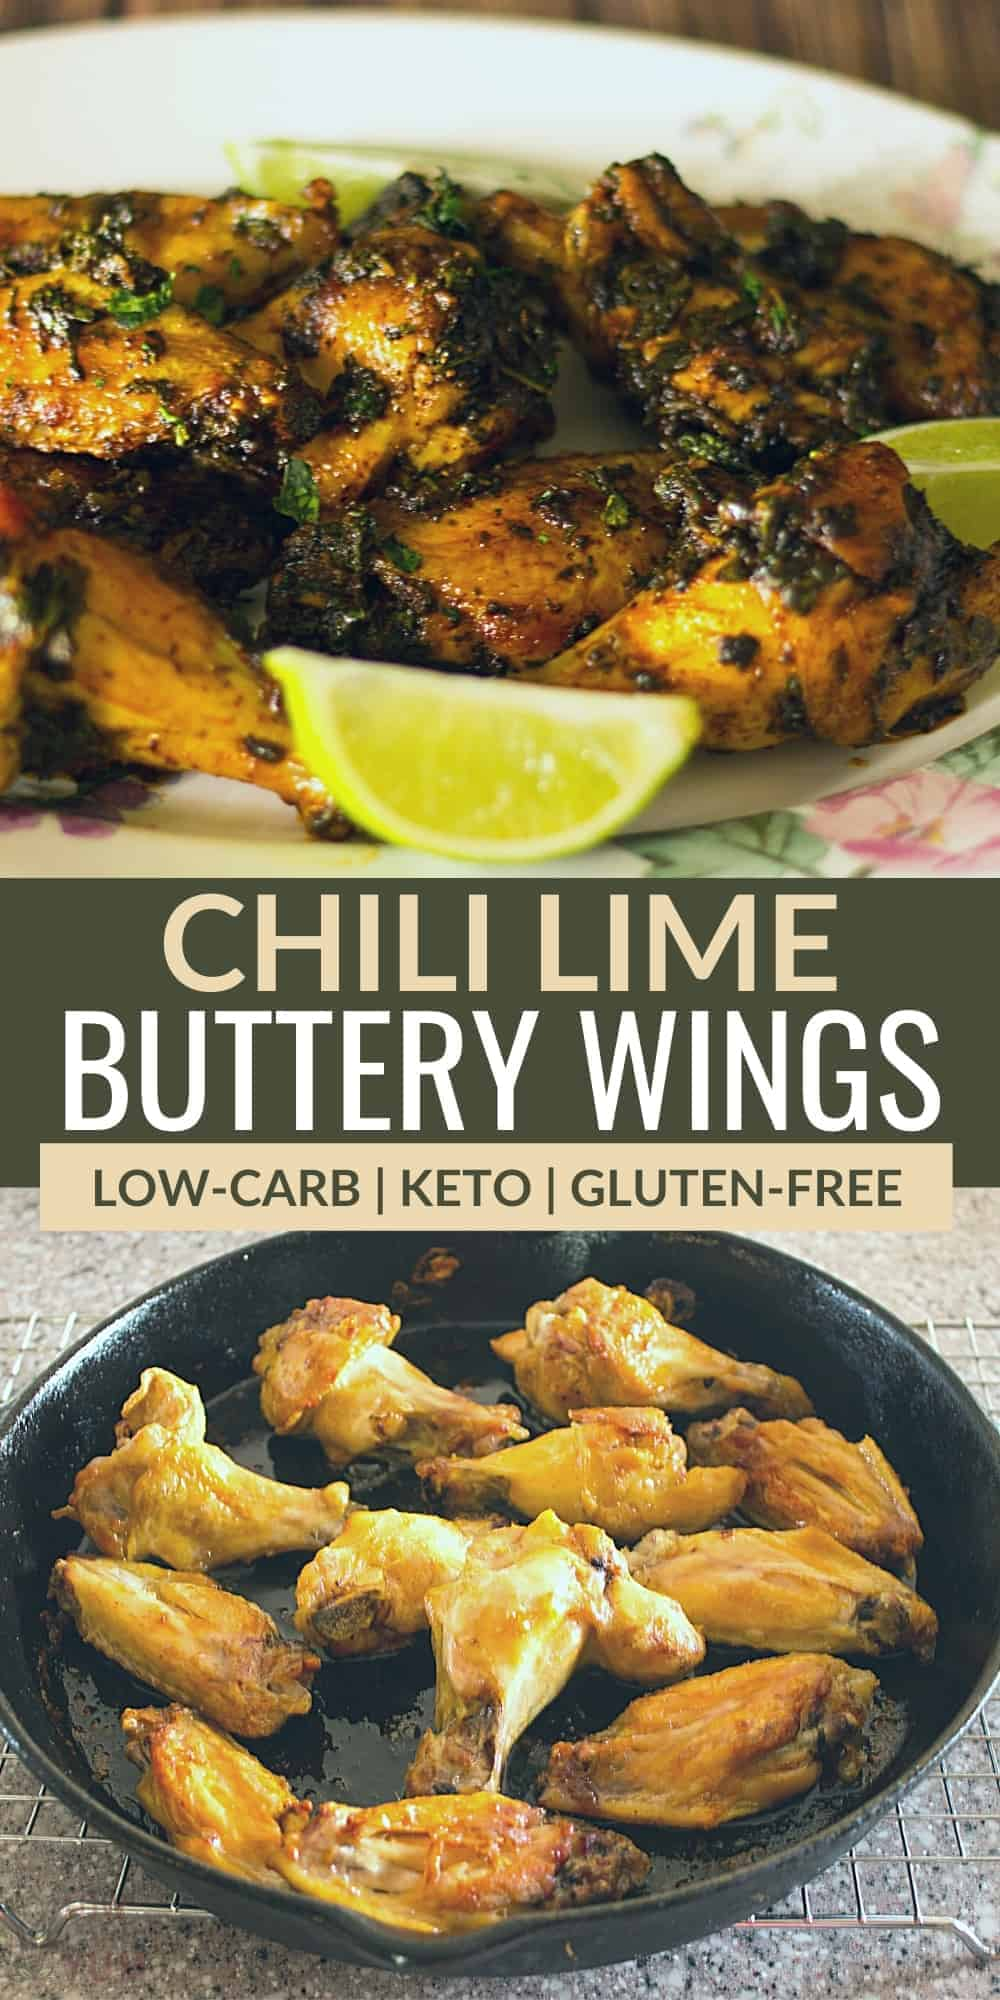 chili lime buttery wings pinterest image